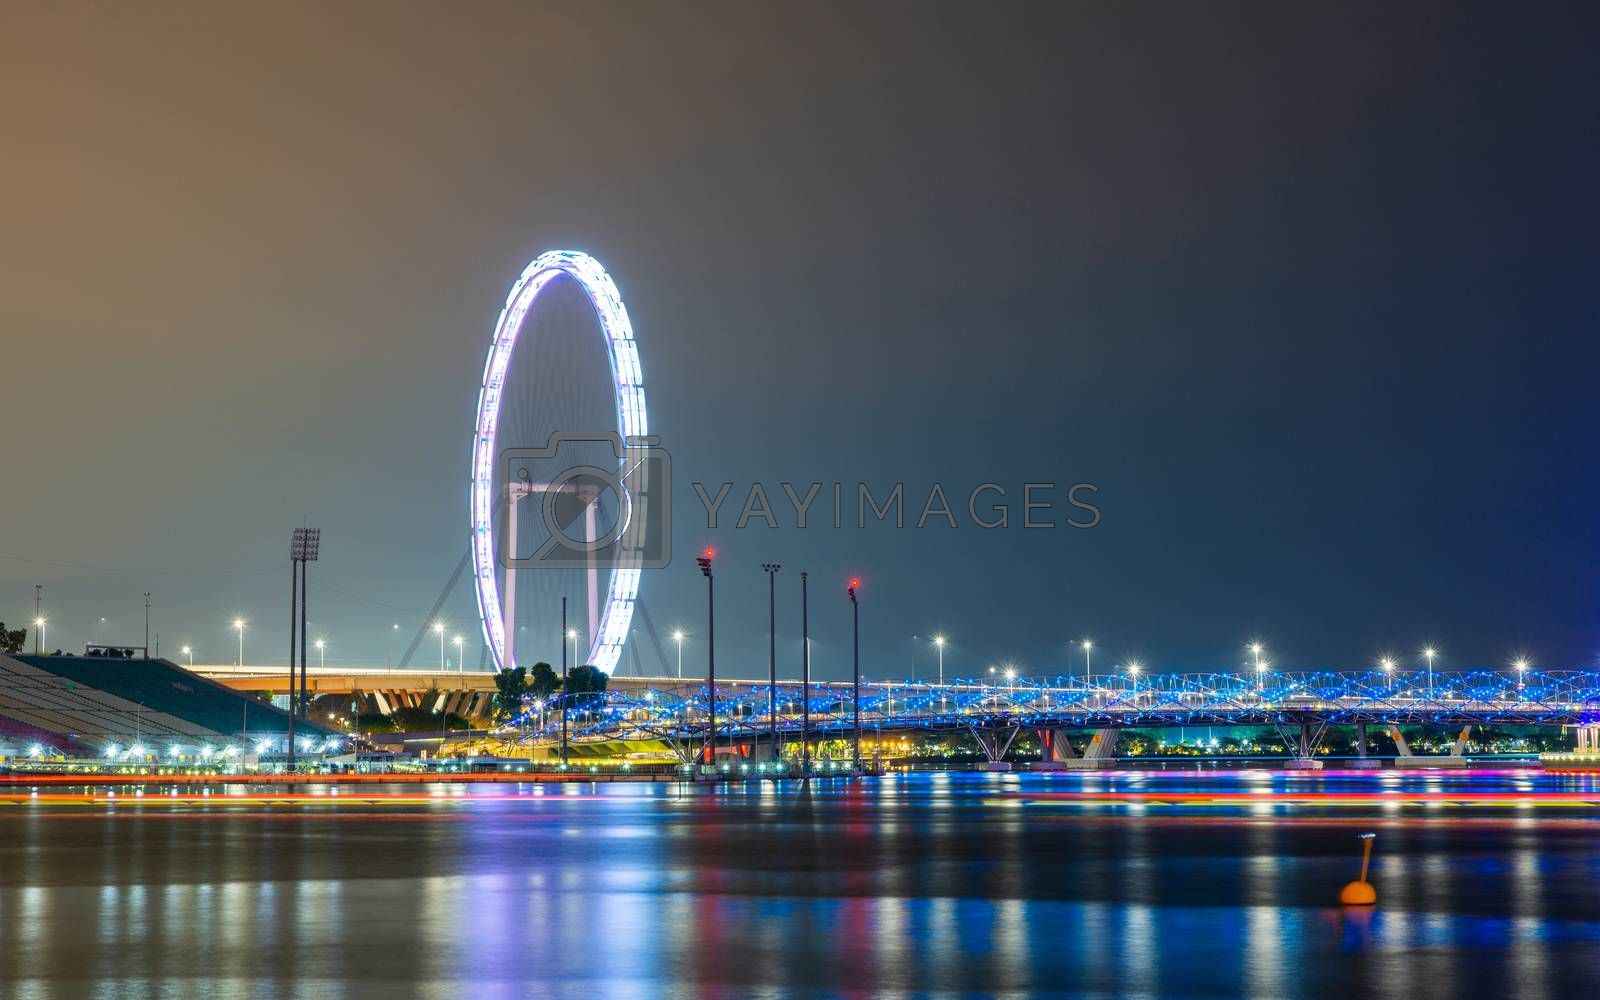 The Singapore Flyer and Helix Bridge at night, colorful lightrails created by boats.